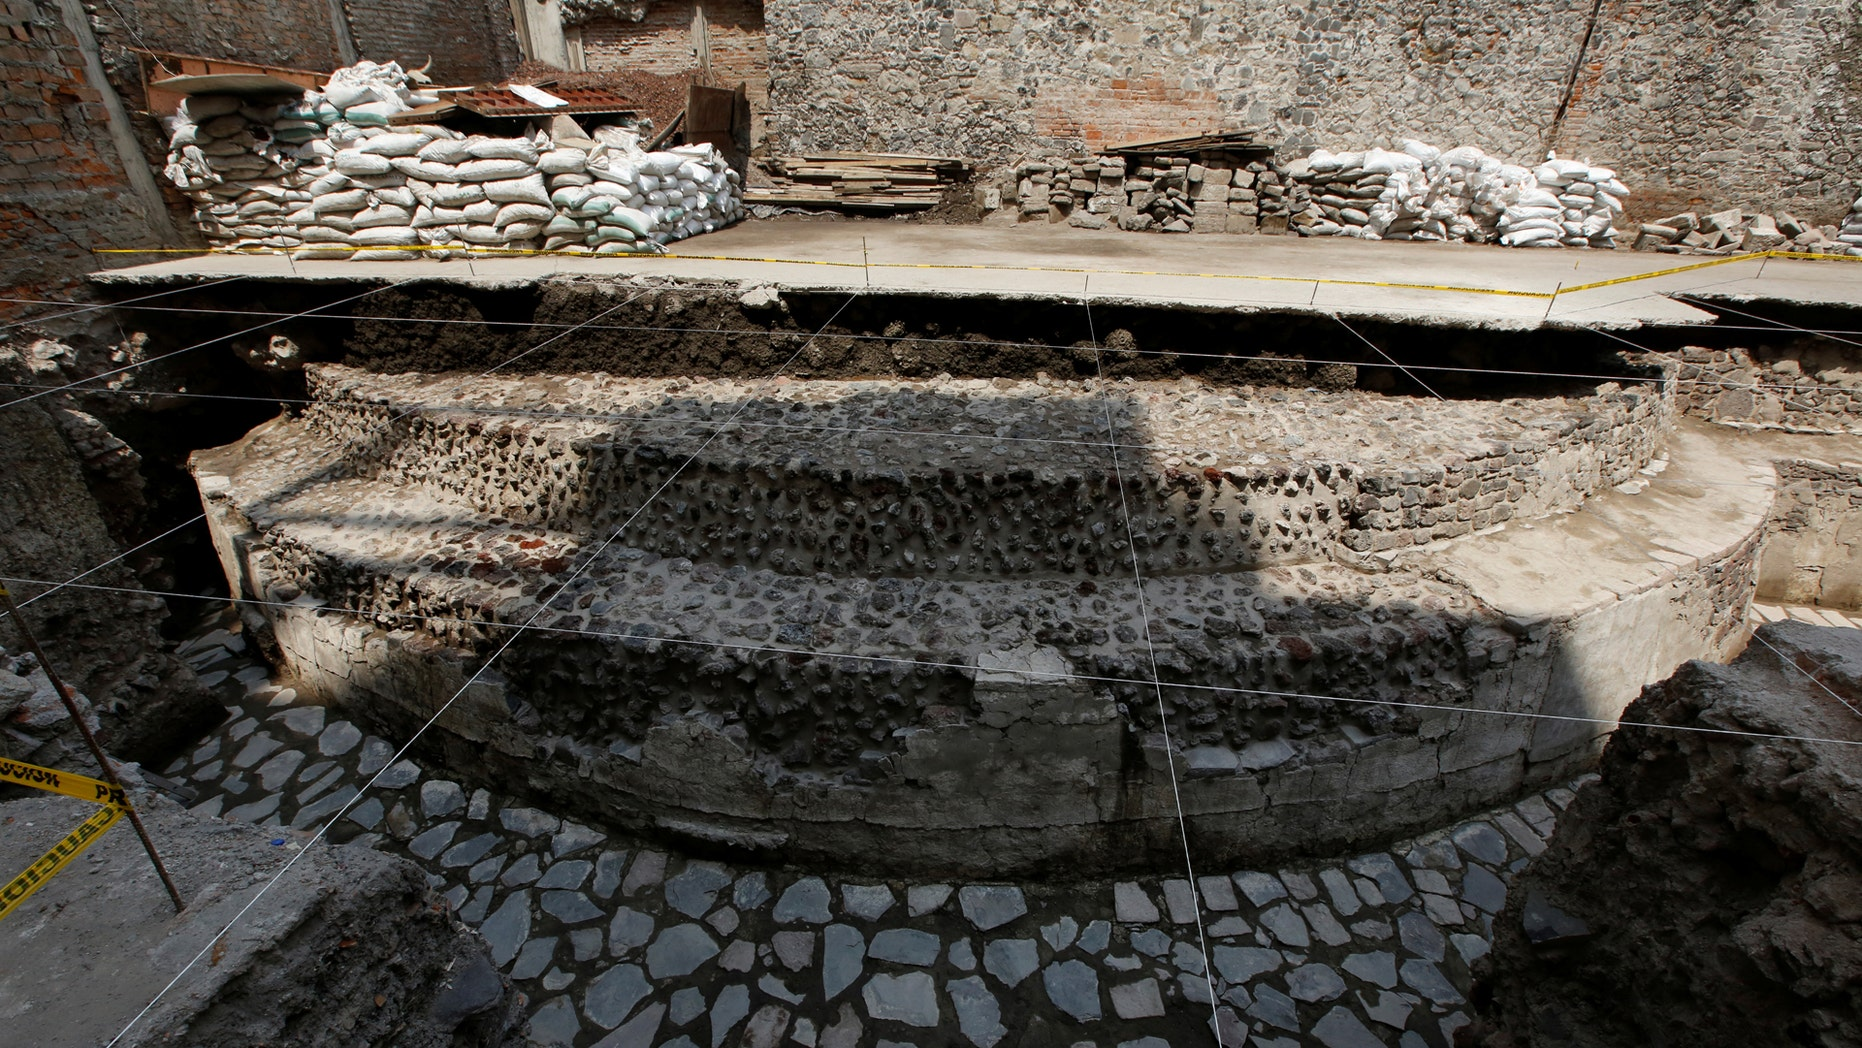 A new Aztec discovery of the remains of the main temple of the wind god Ehecatl, a major deity, is seen during a tour of the area, located just off the Zocalo plaza in the heart of downtown Mexico City, Mexico June 7, 2017. (REUTERS/Henry Romero)